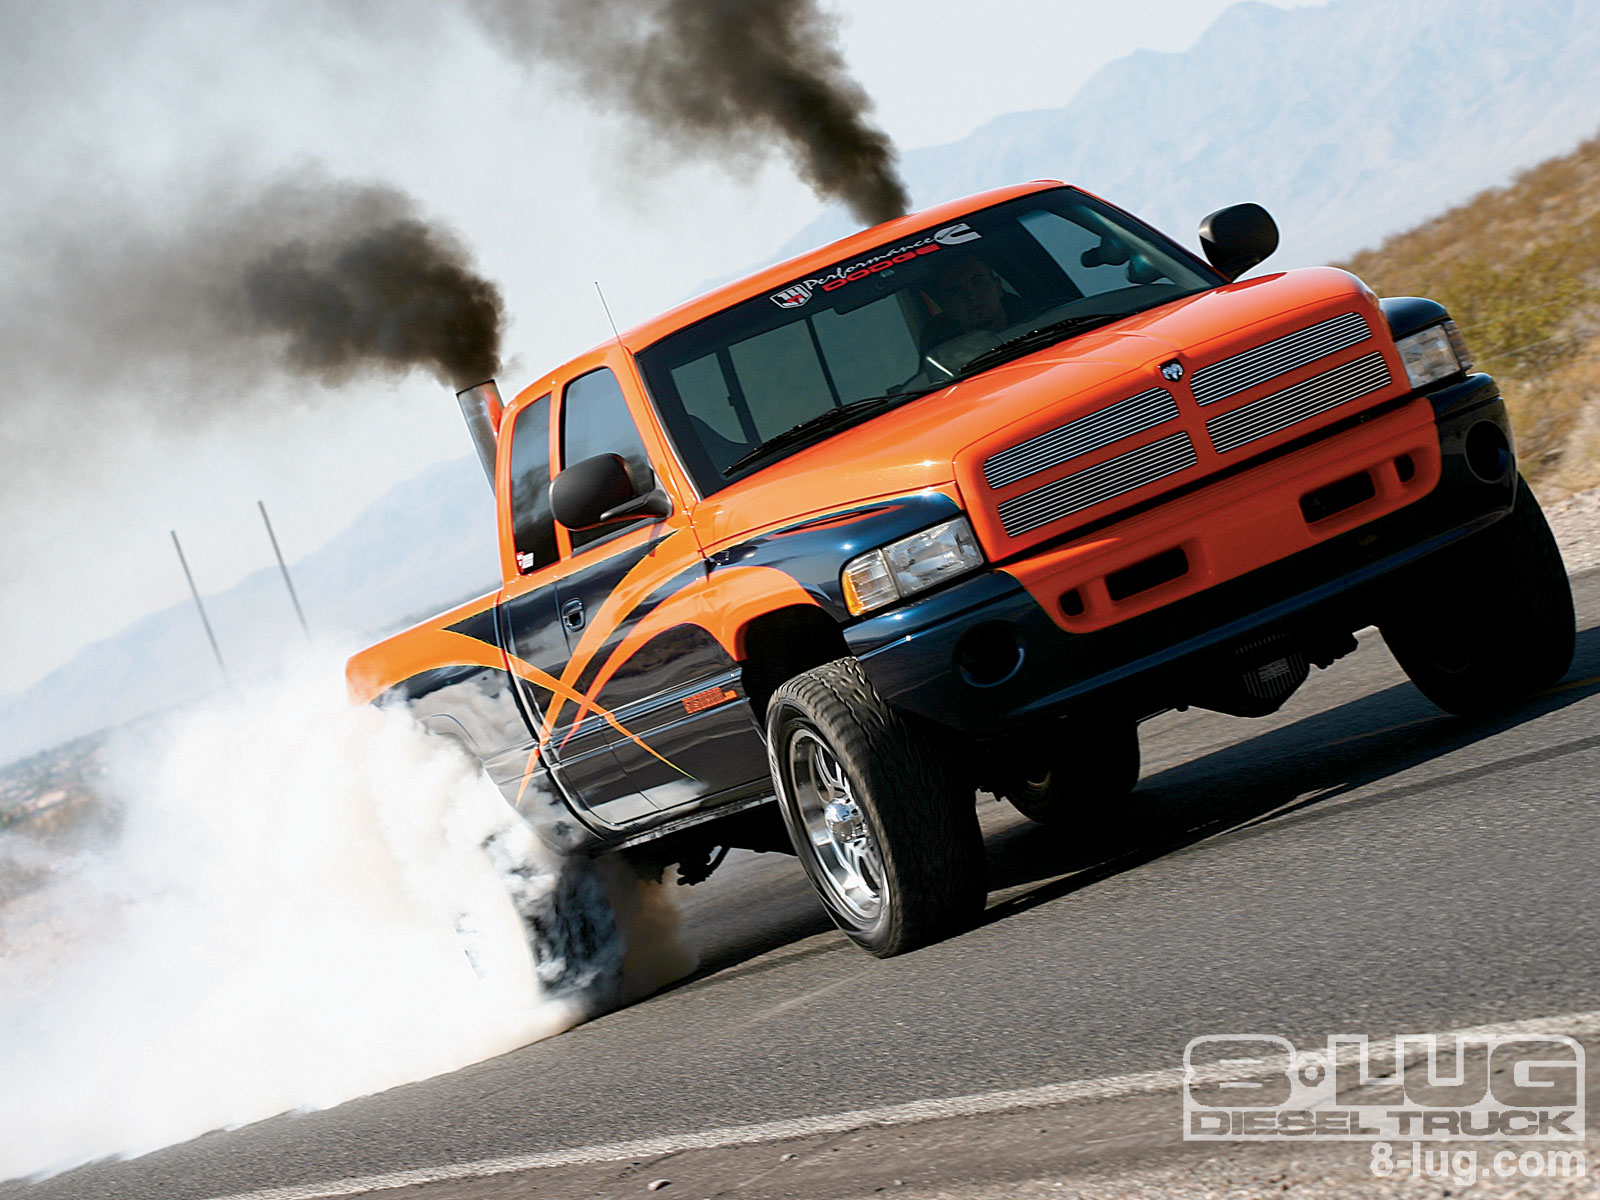 Dodge Cummins Wallpaper Computer 2001 dodge ram 2500 diesel 1600x1200